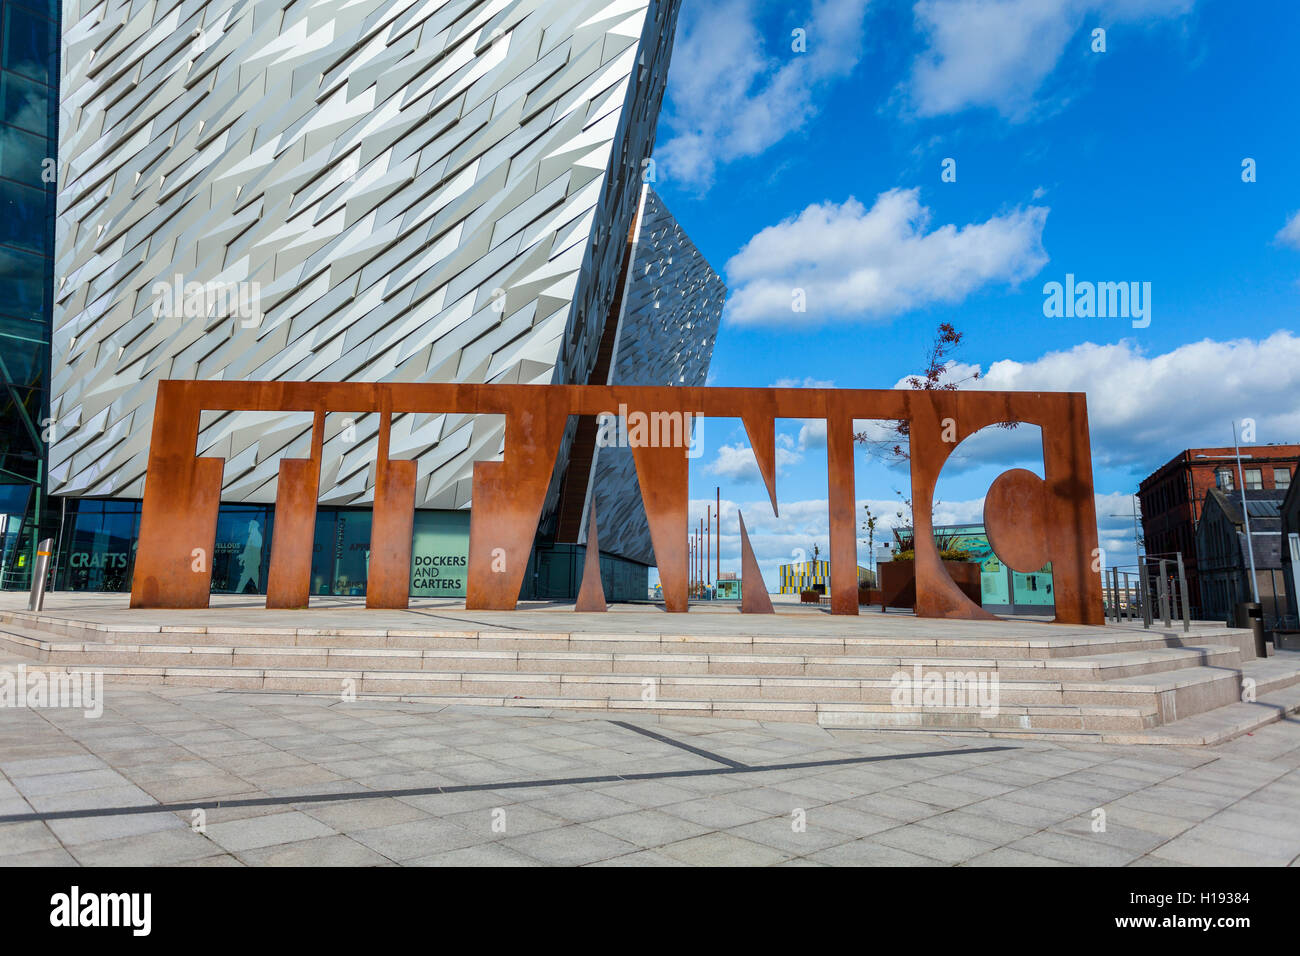 Metal Titanic sign at the Titanic Building, Belfast Stock Photo